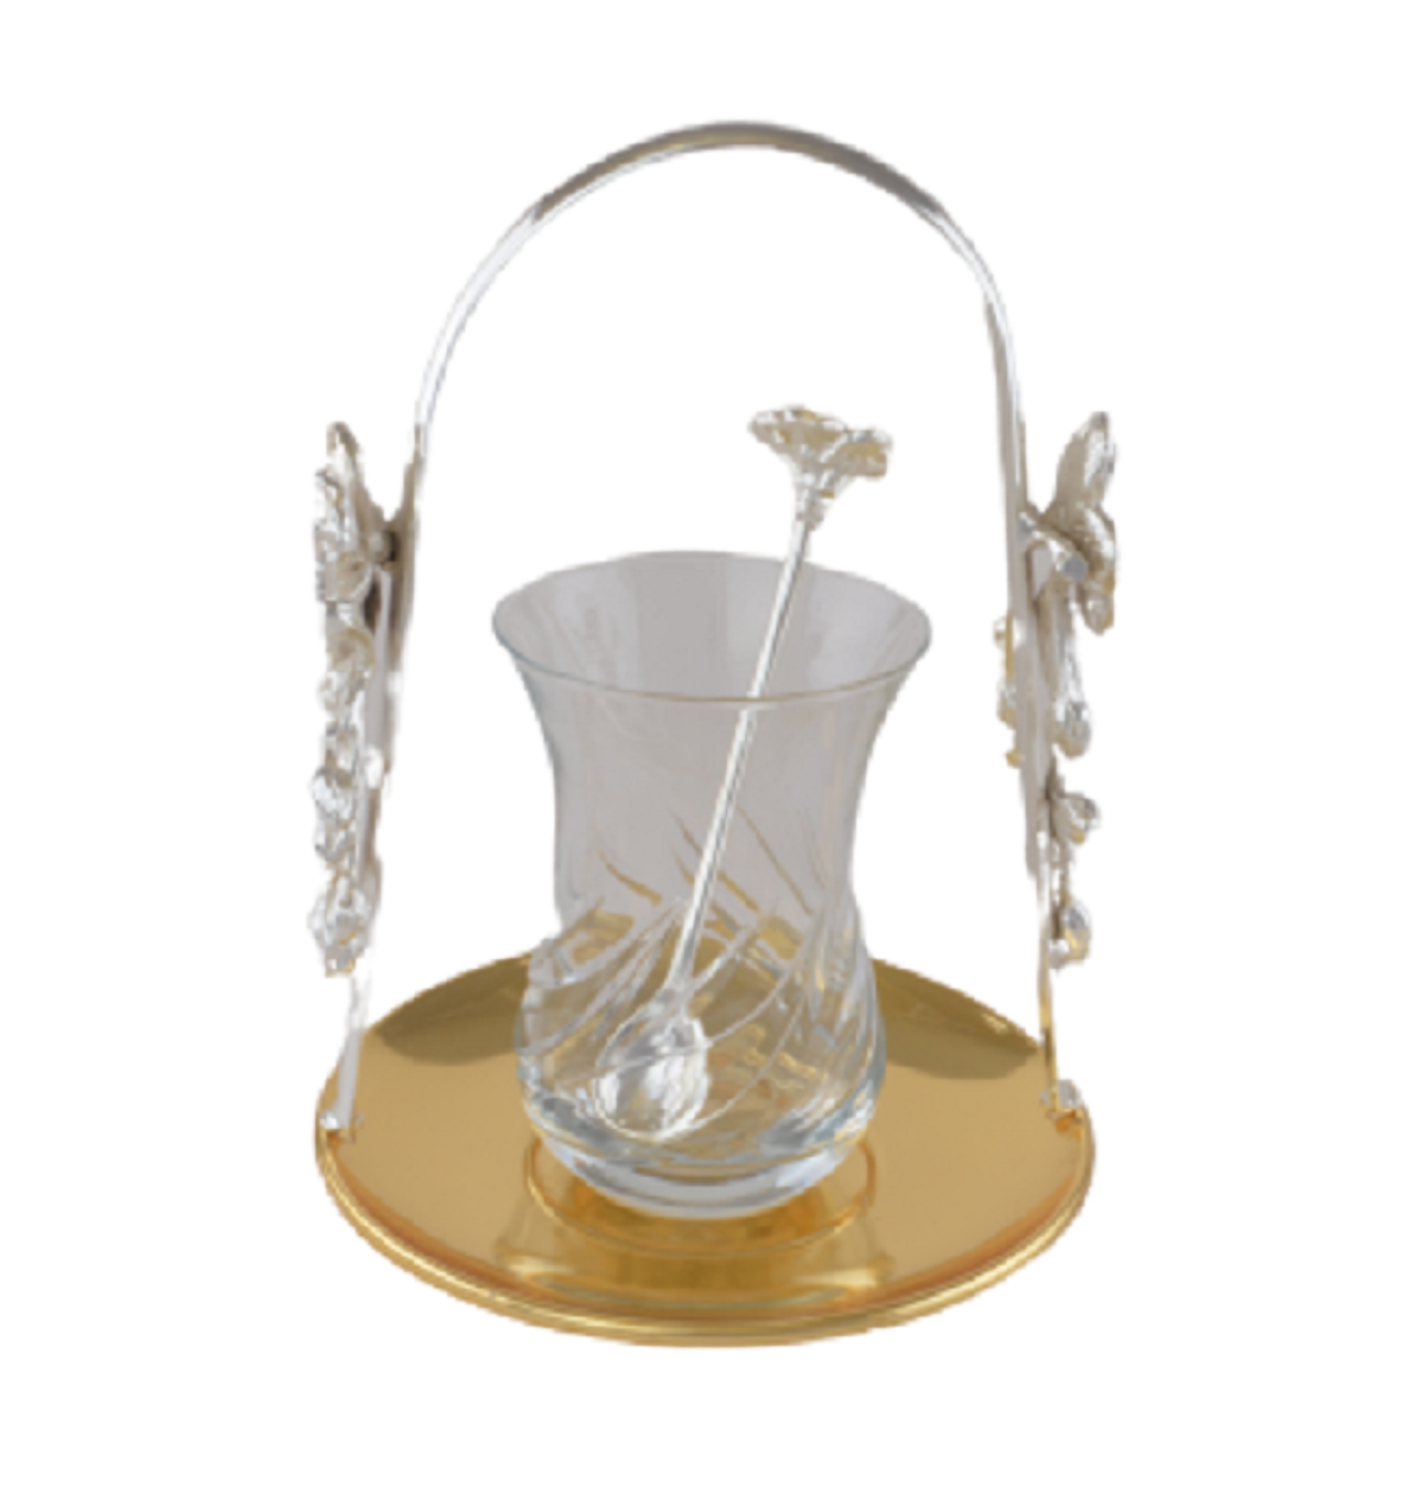 Picture of MEVLANA TEA CUP WITH GOLD-SILVER HANGED TEA PLATE